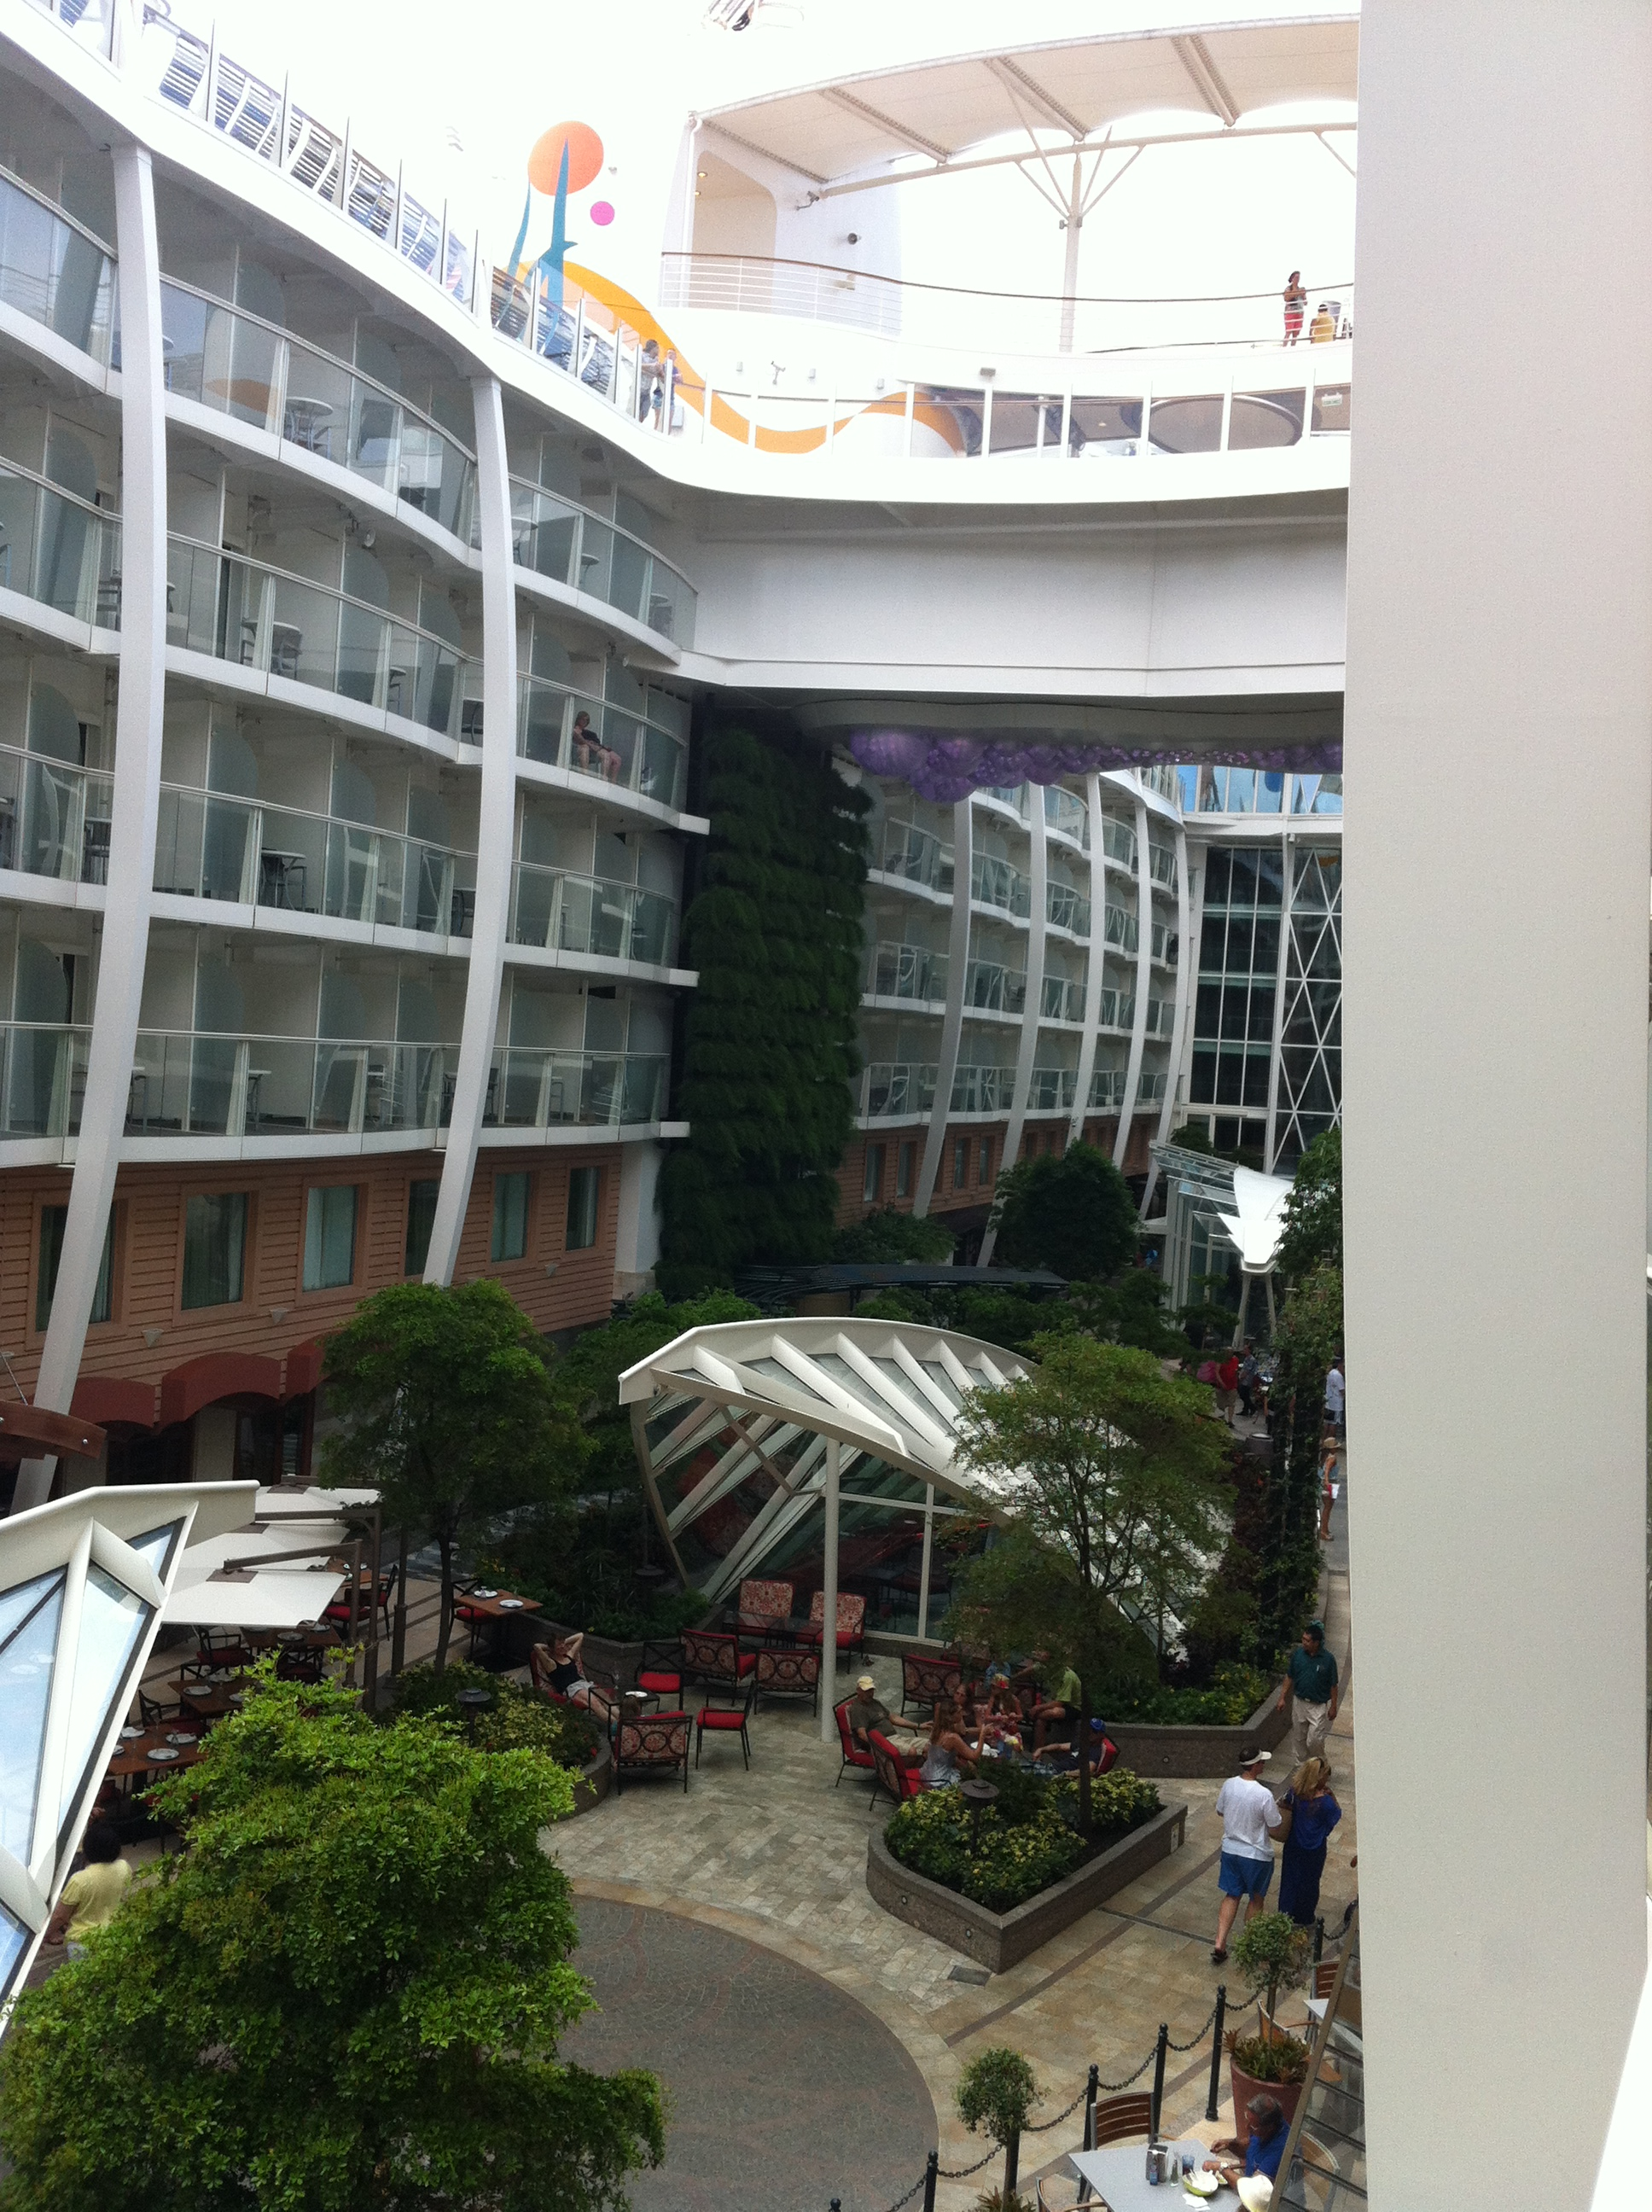 Royal caribbean allure of the seas cruise review for cabin for Balcony view on cruise